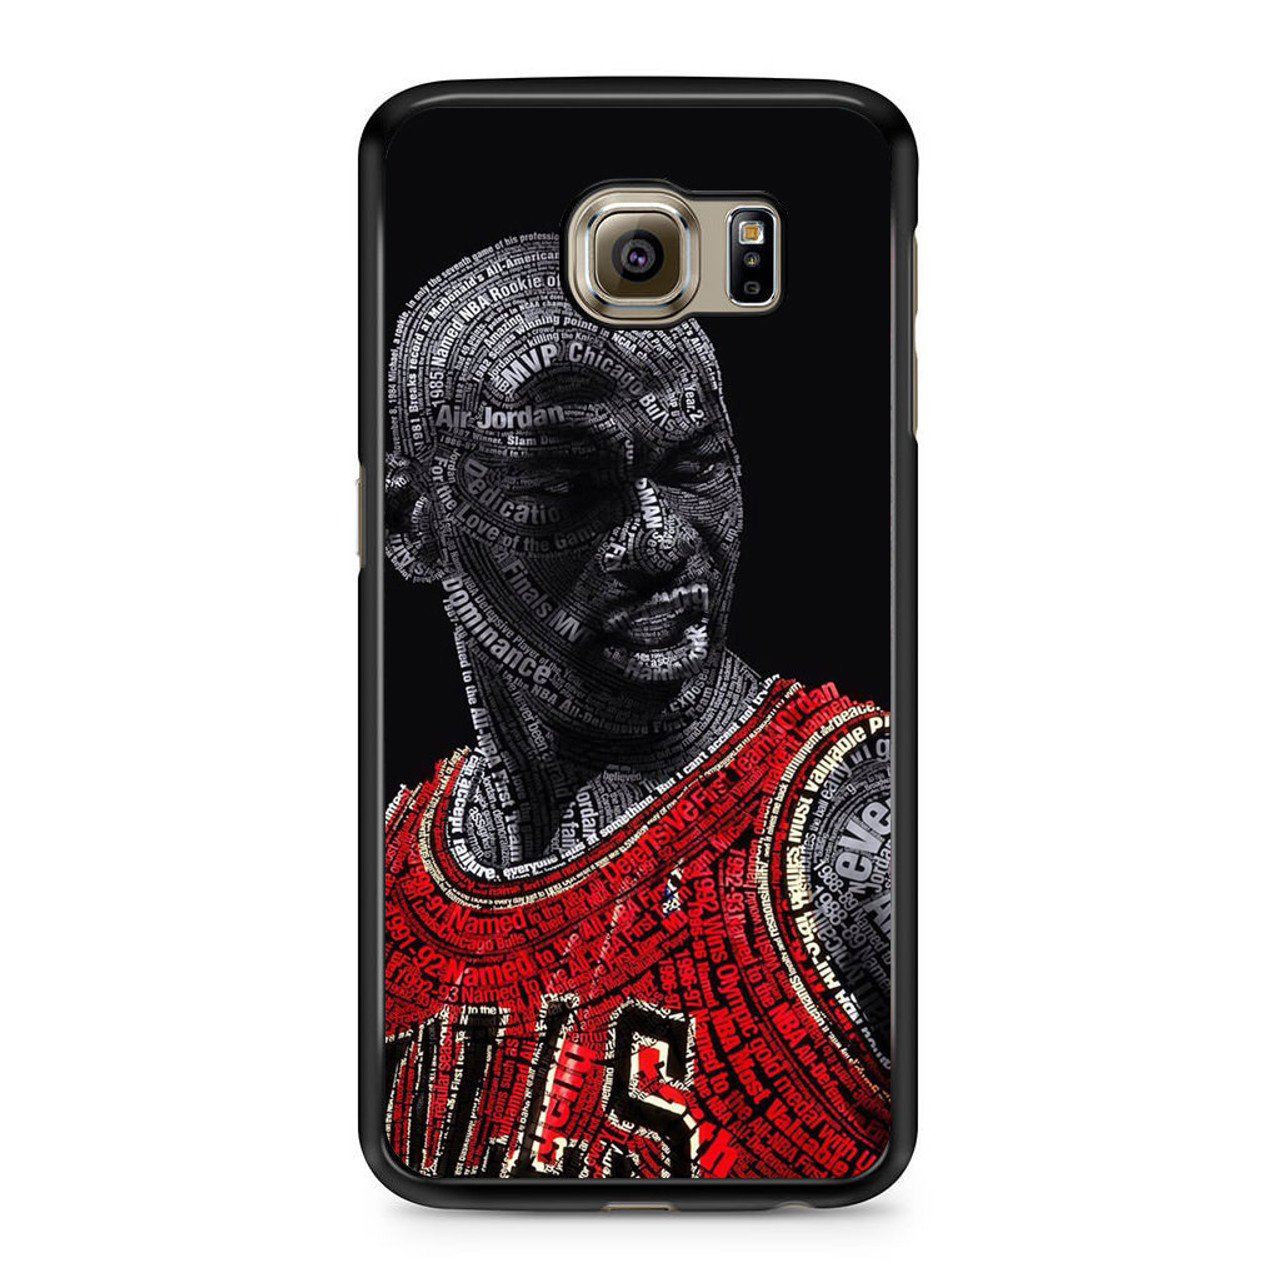 competitive price ae20c 4d169 Michael Jordan The Legend Samsung Galaxy S6 Case